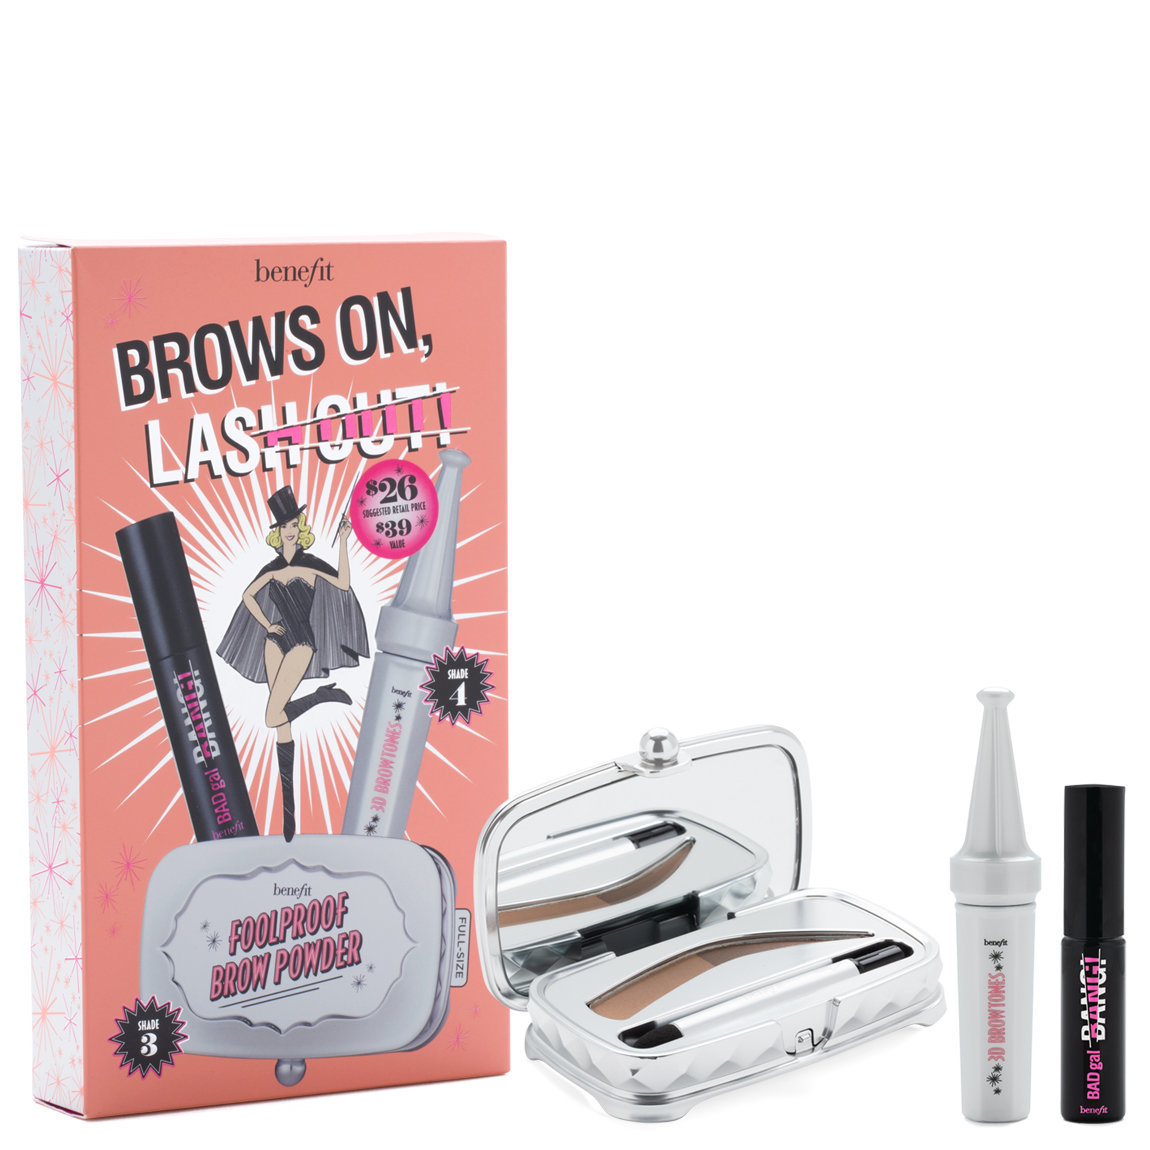 Benefit Cosmetics Brows On, Lash Out! Brow & Mascara Set product swatch.